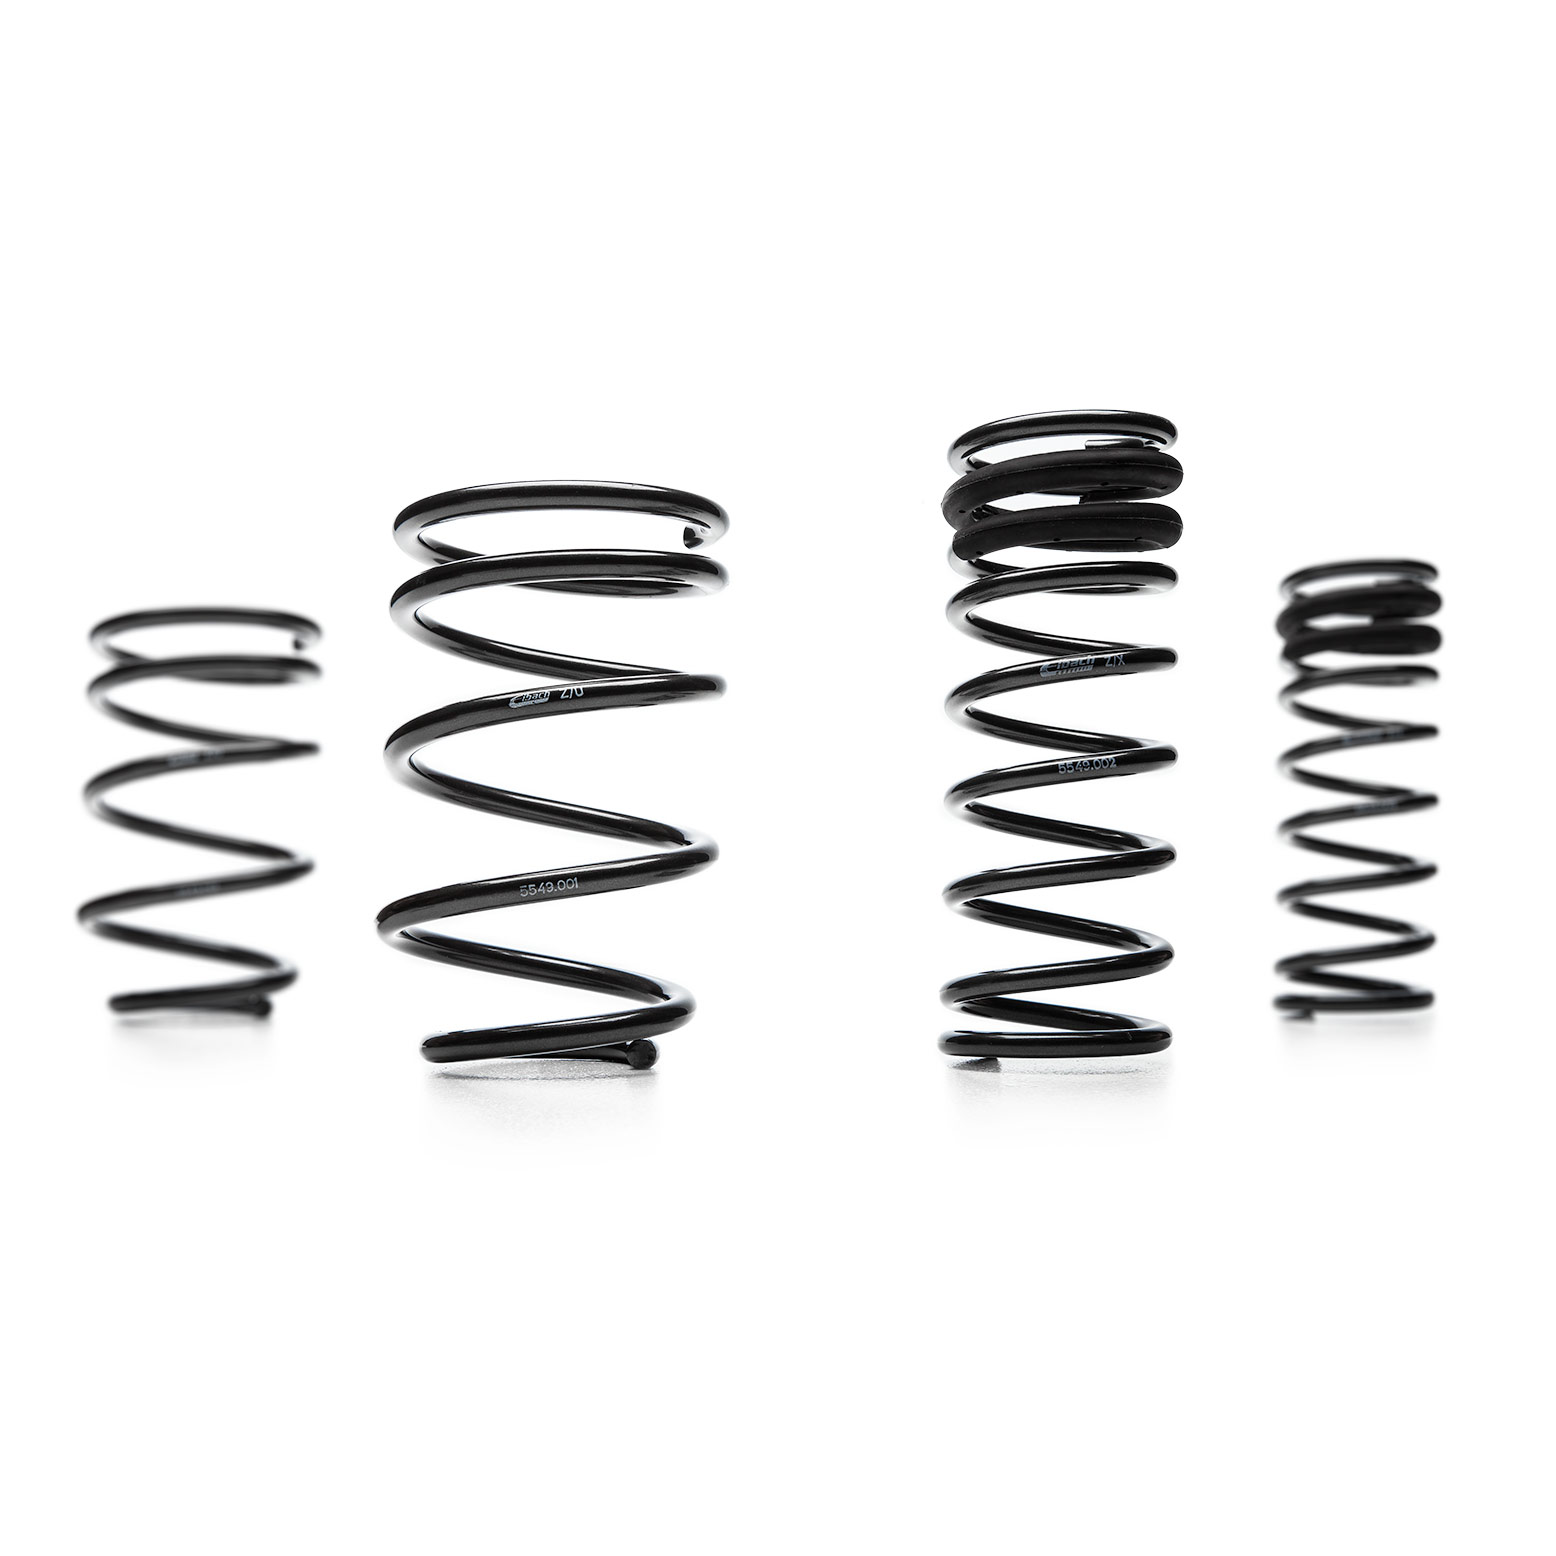 Eibach Pro-Kit Lowering Springs Mazdaspeed3 2007-2009